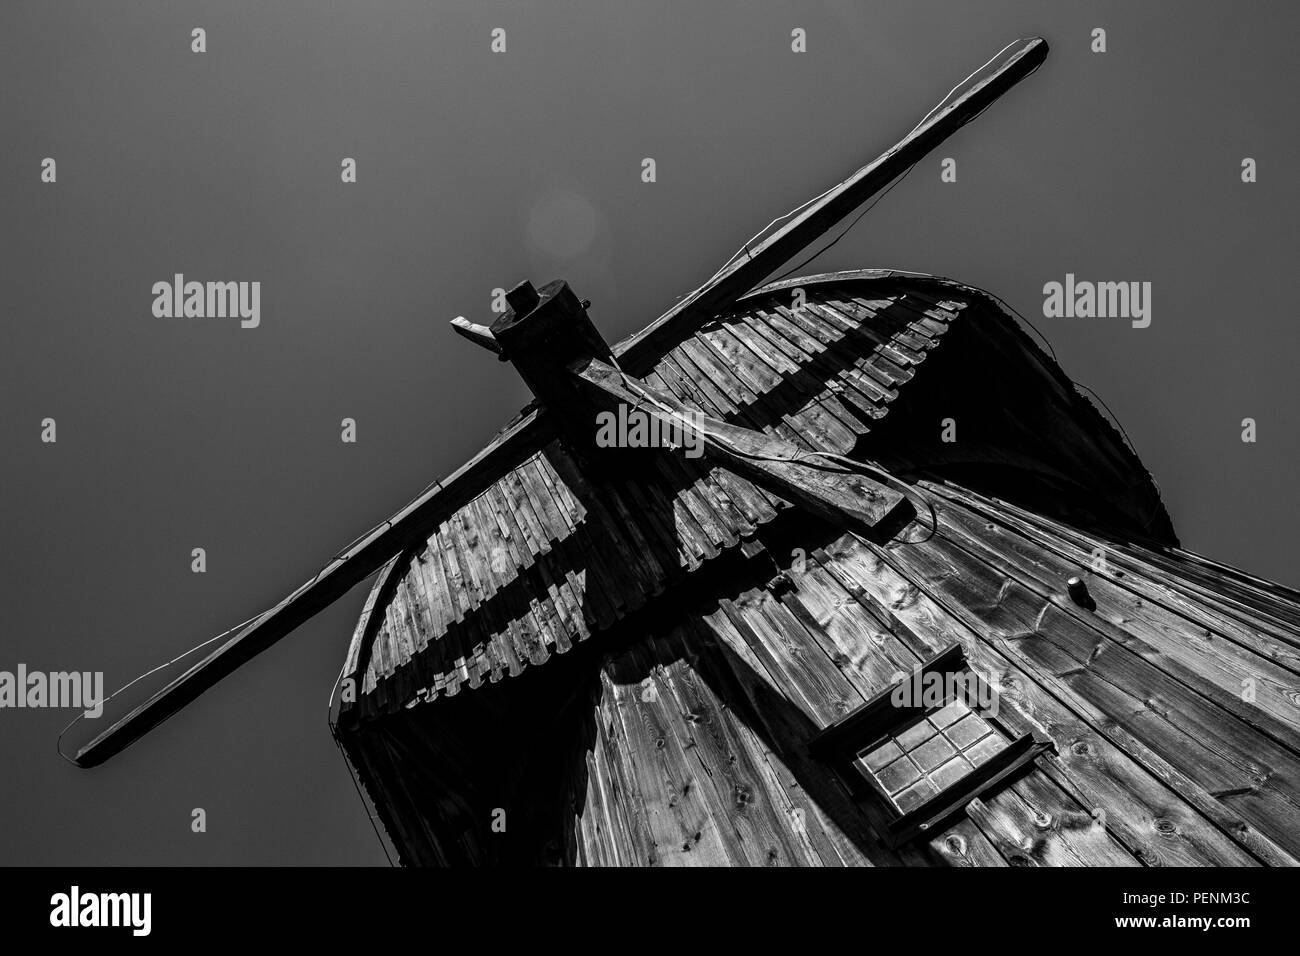 Old wooden windmill in Open Air Village Museum in Lublin, Poland, Monochrome - Stock Image